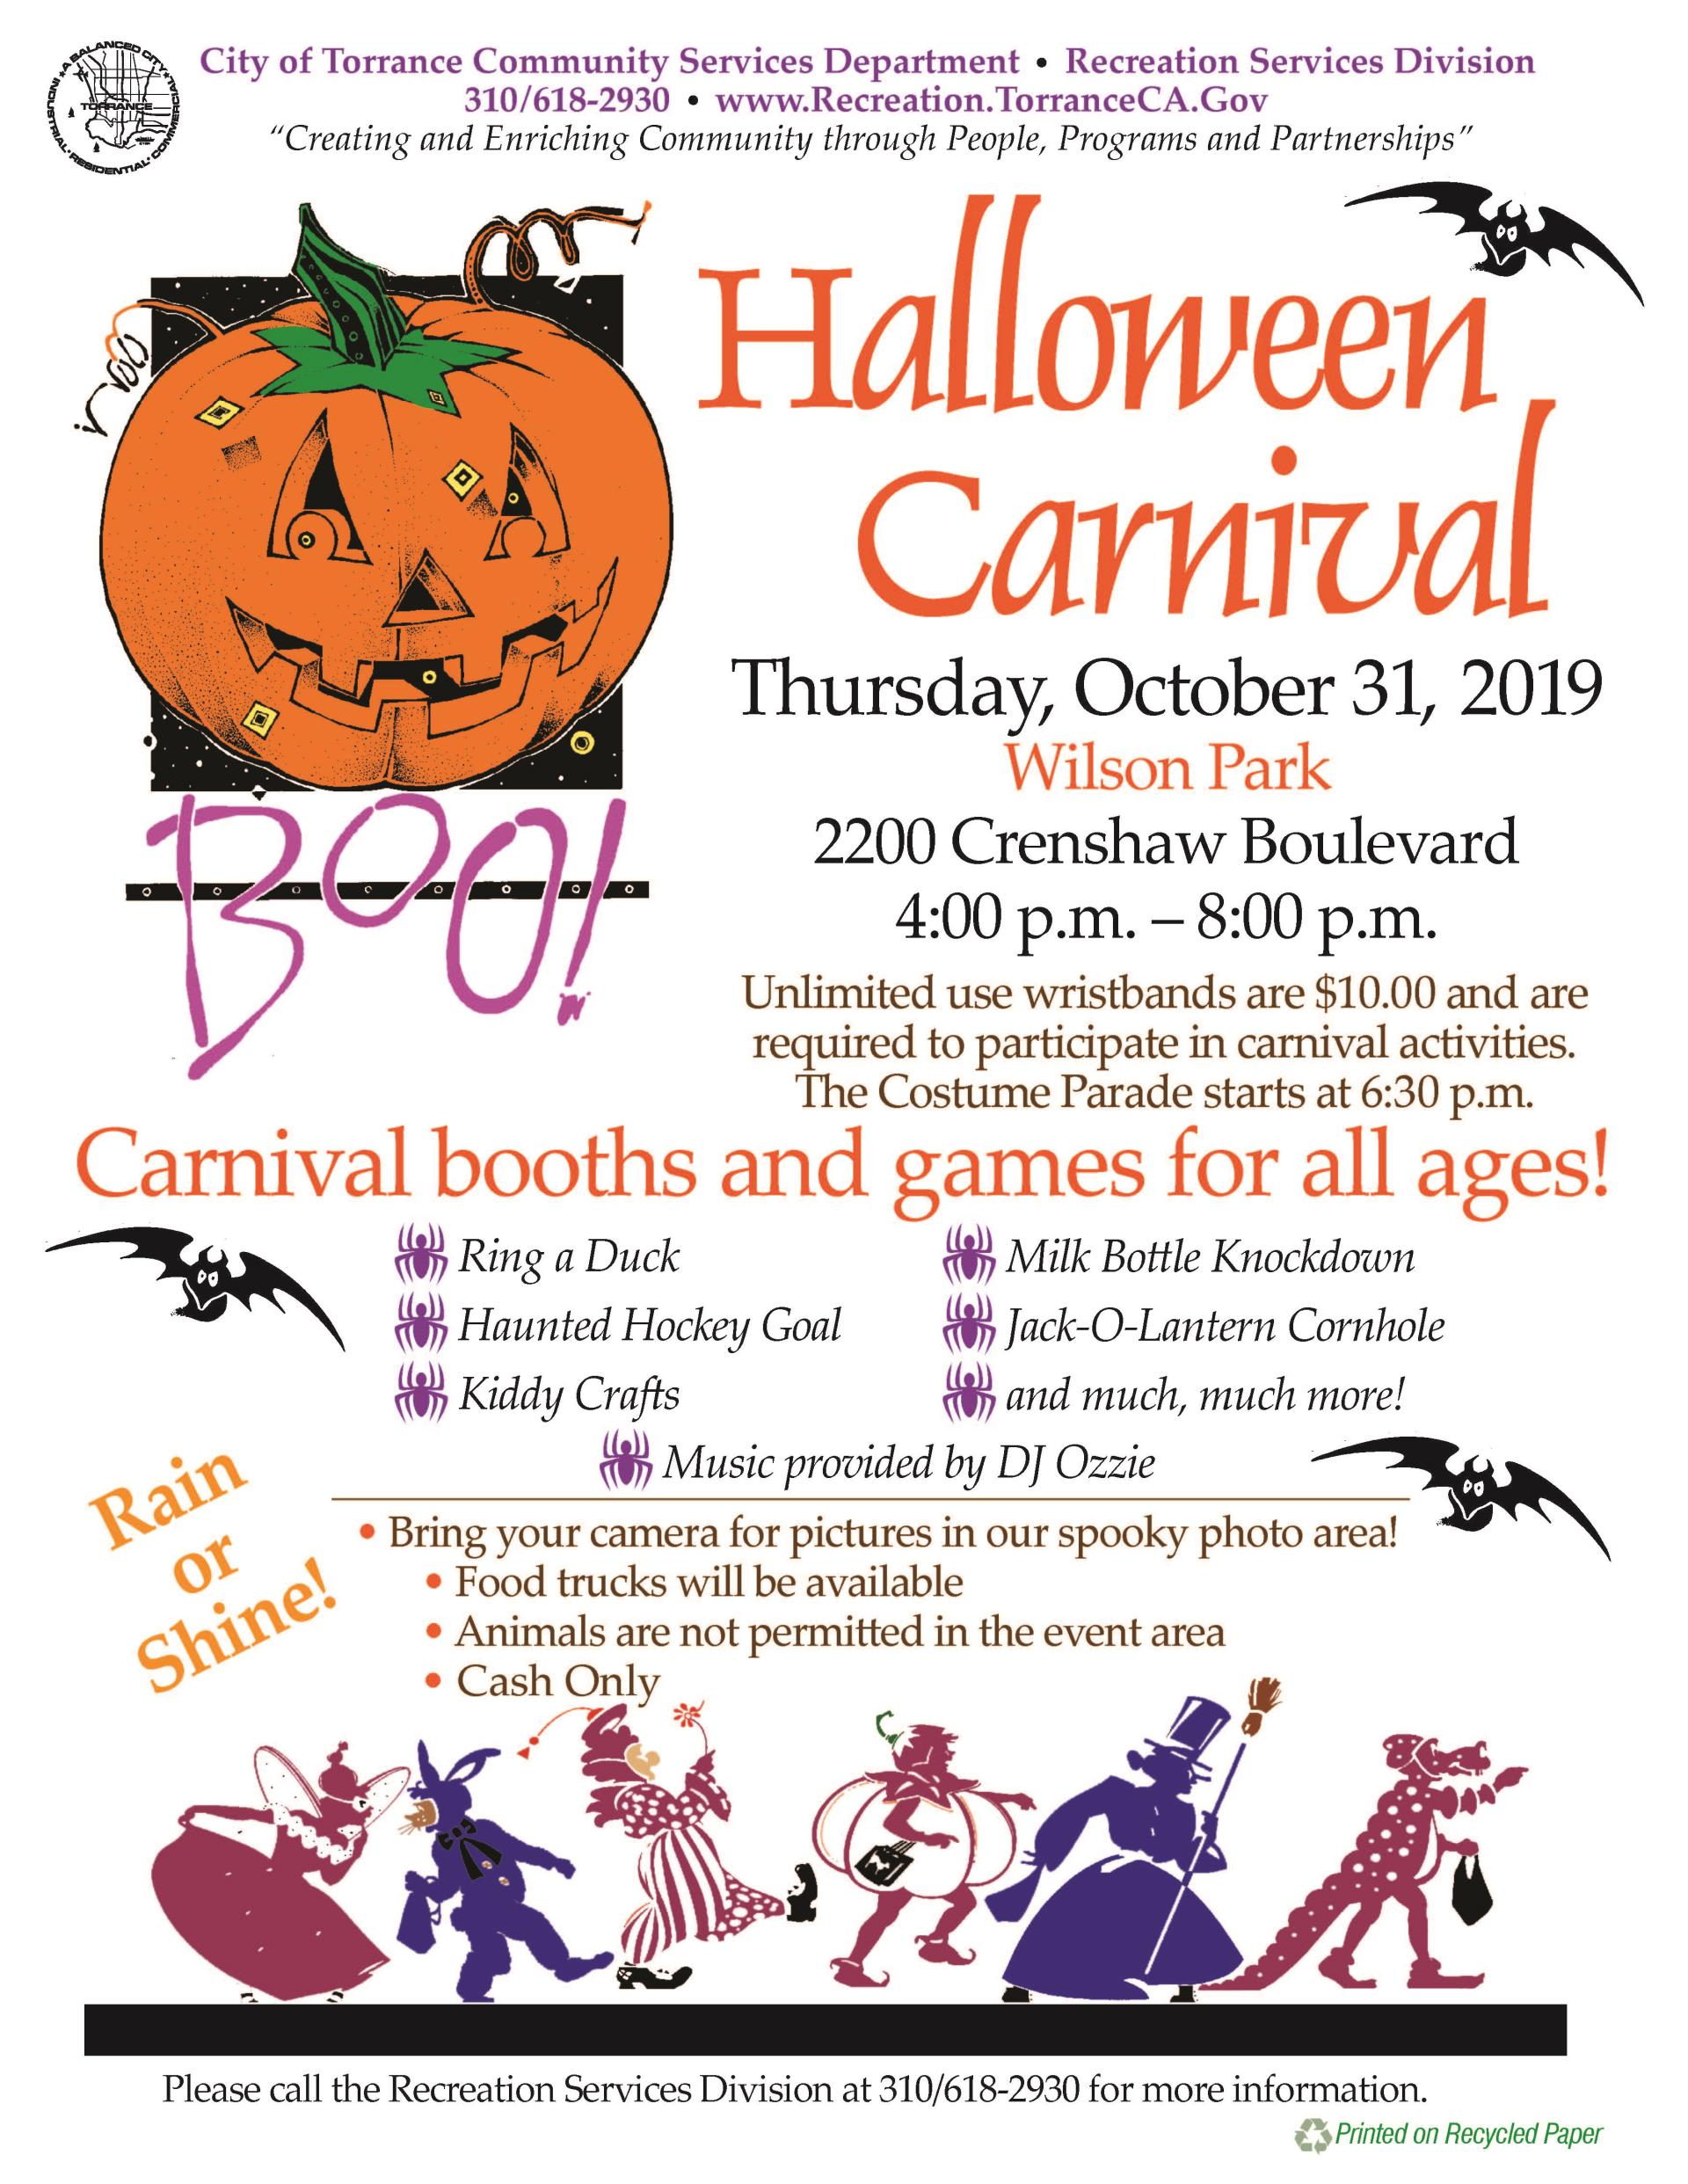 Halloween 2020 Carnival Based Halloween Carnival | City of Torrance